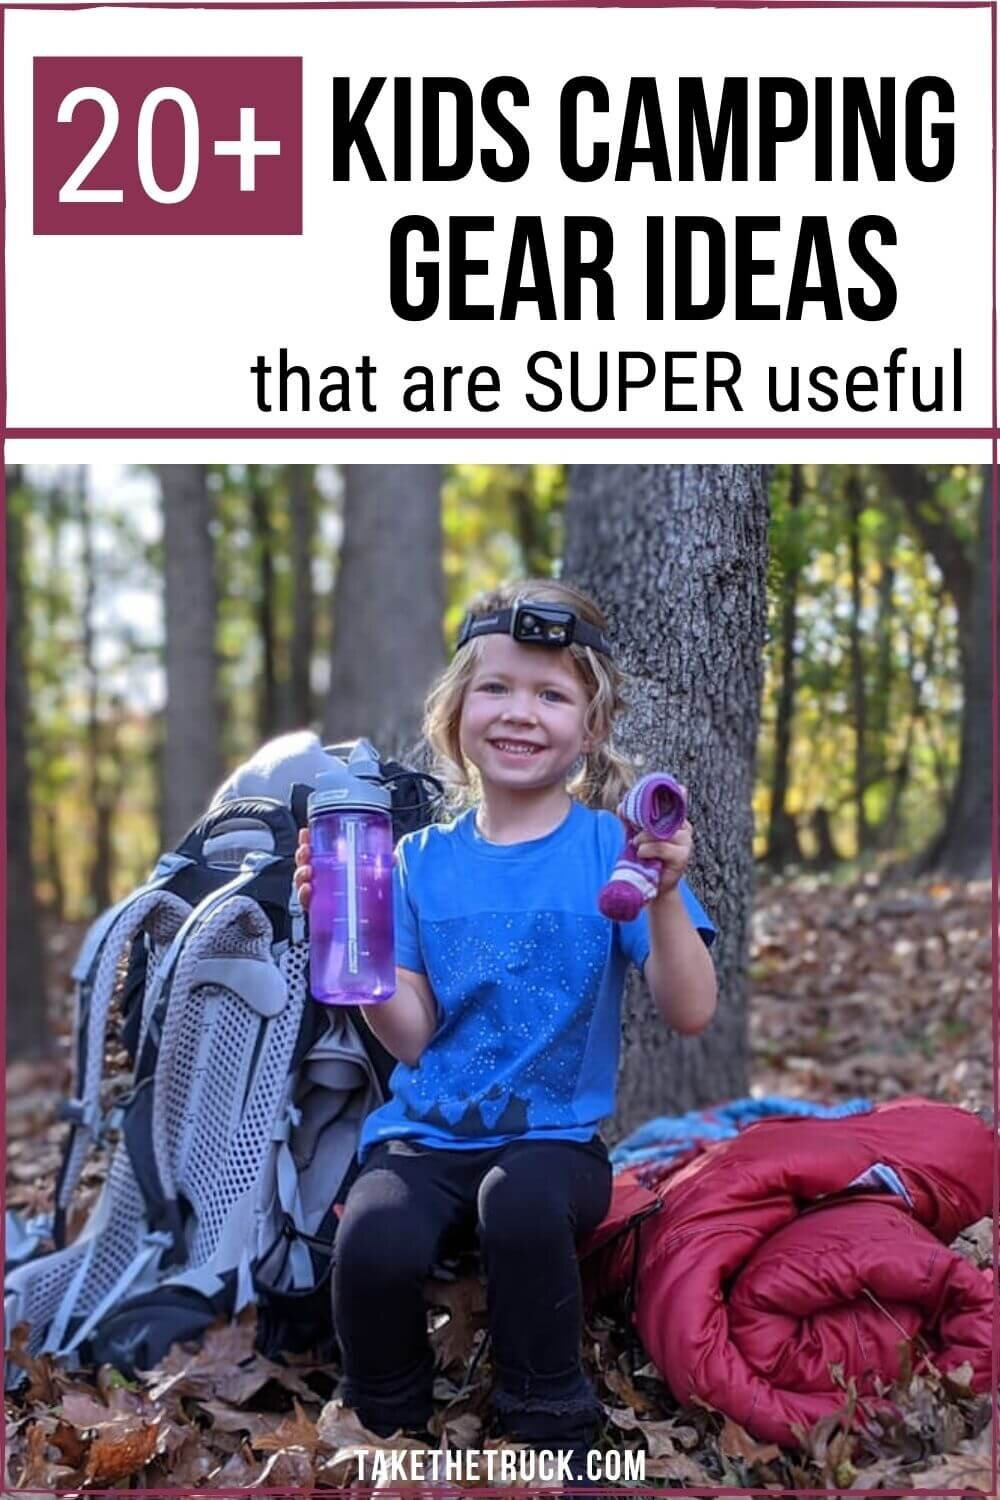 Searching for the best kids' camping gear to buy for the children in your life? Check out over 20 useful camping gear ideas that make great outdoor gear gifts for kids, from babies up to teens.